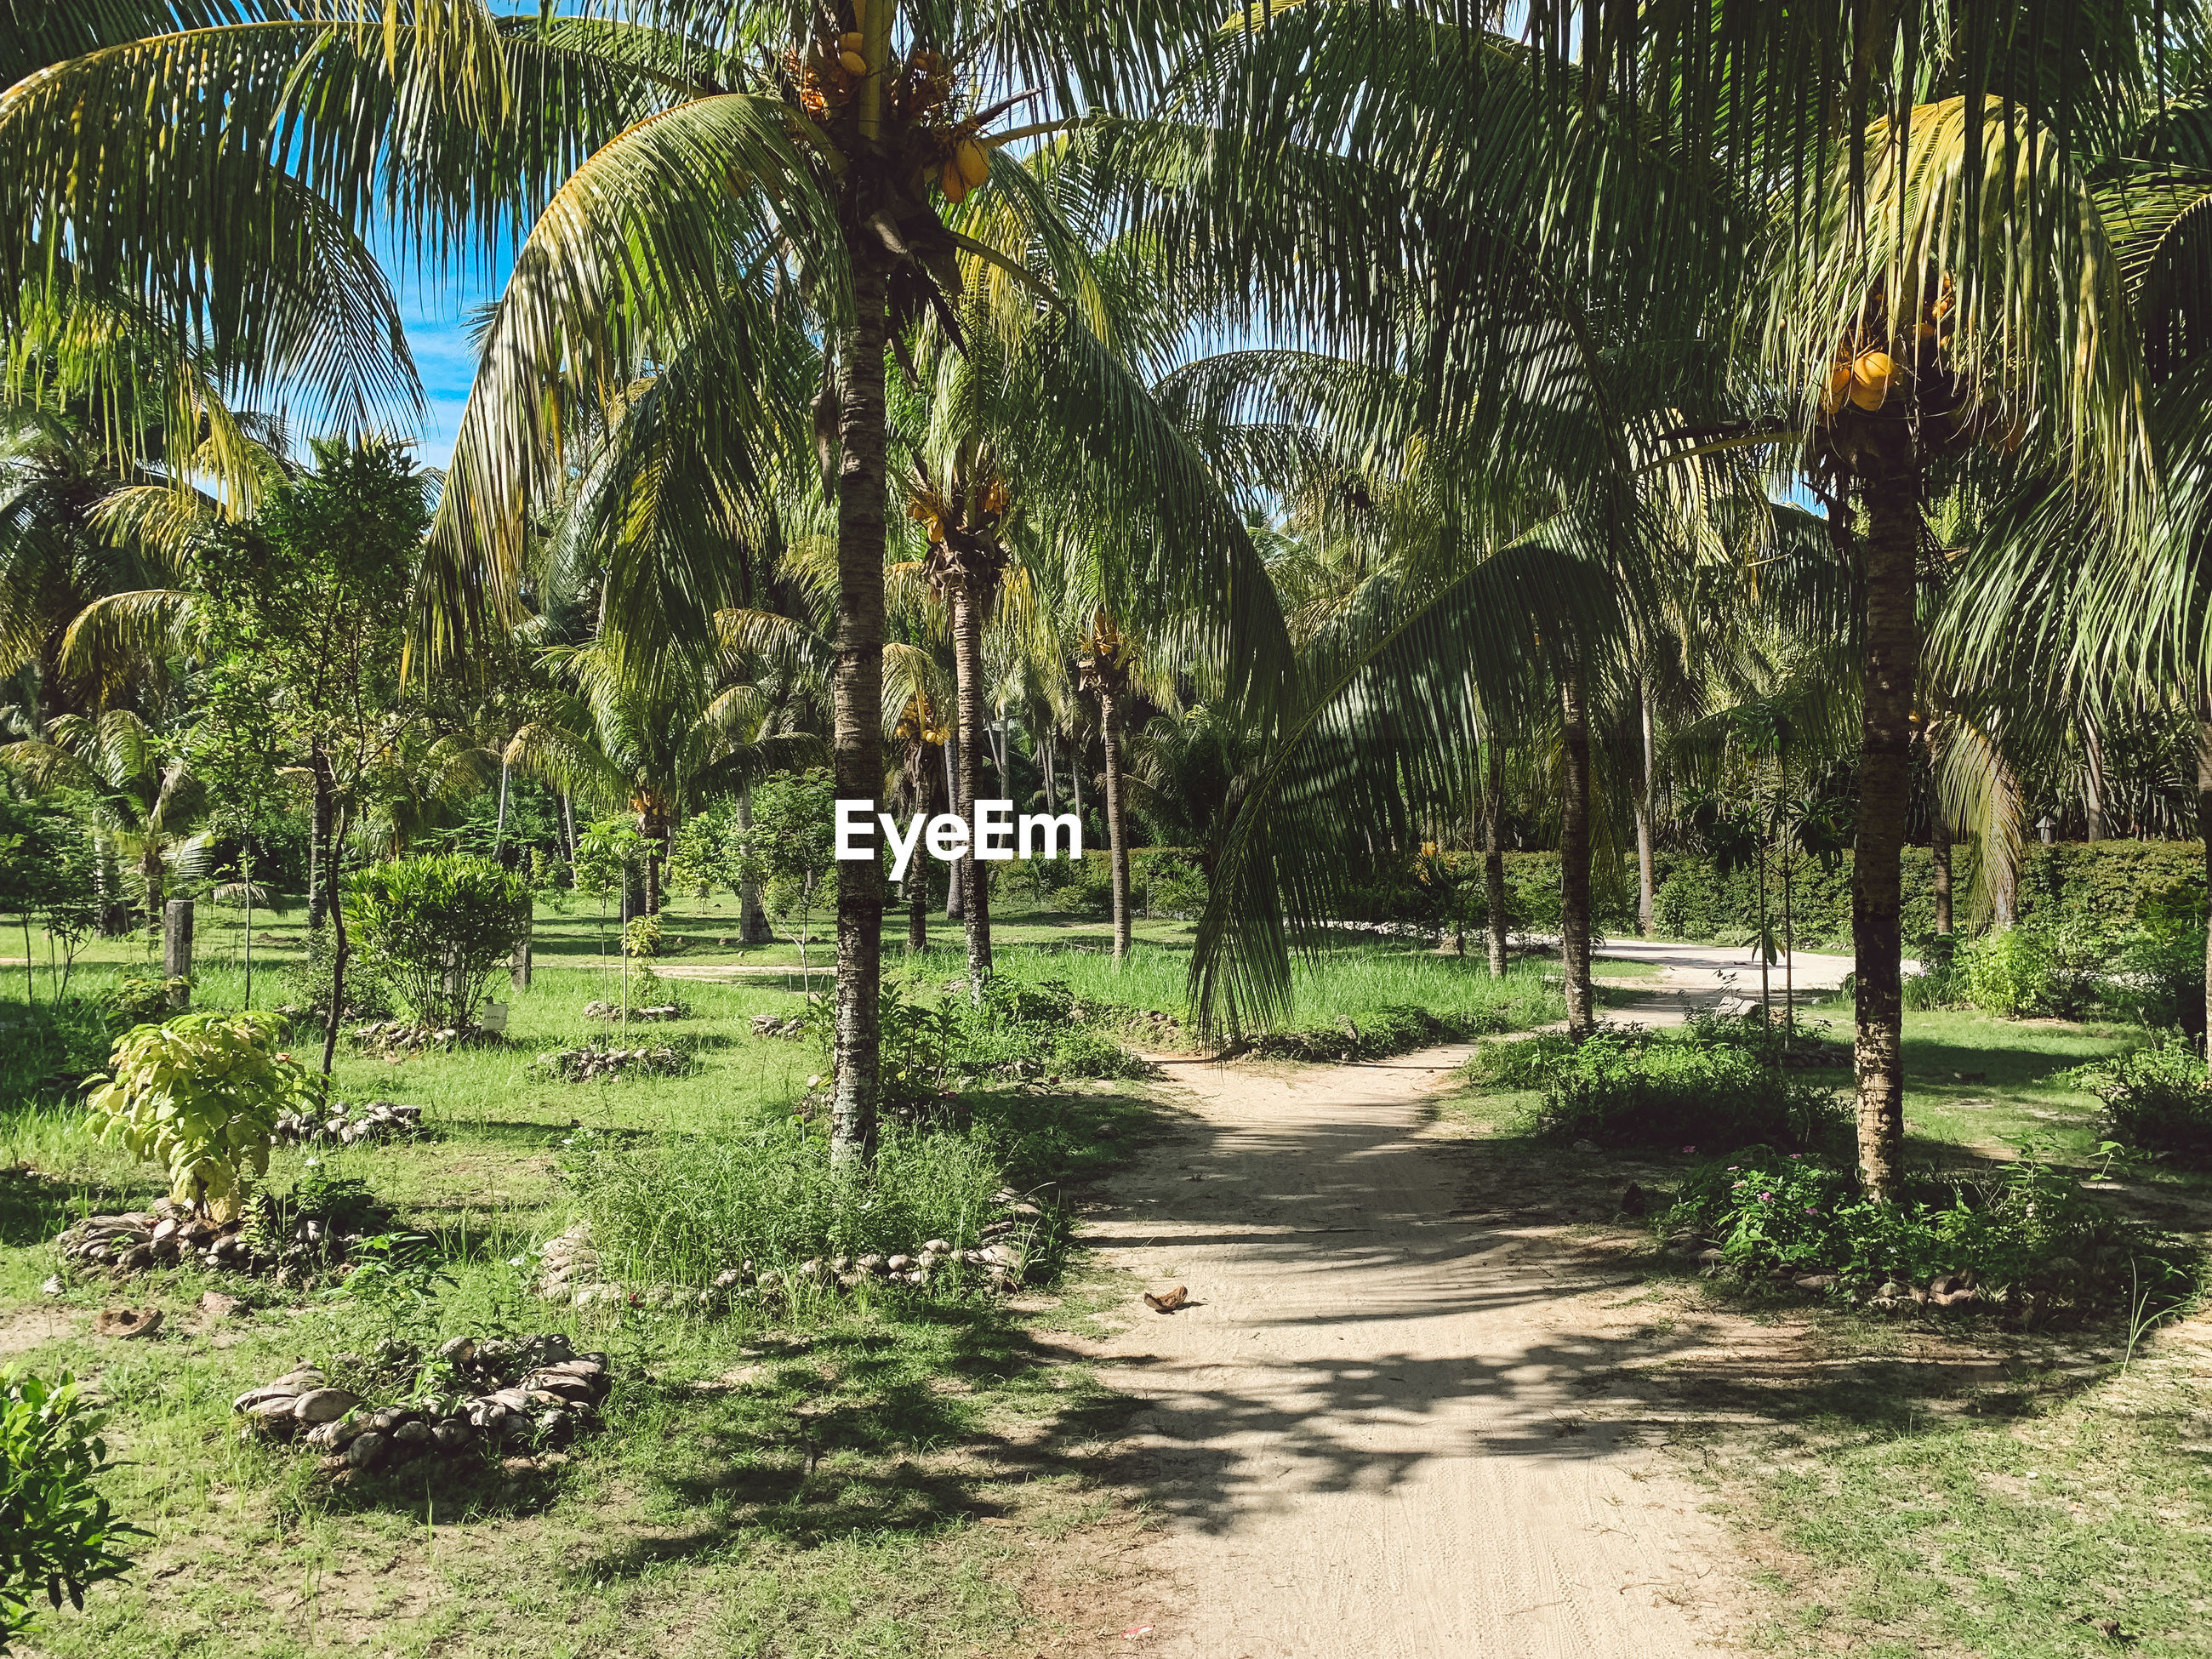 Footpath amidst palm trees in park